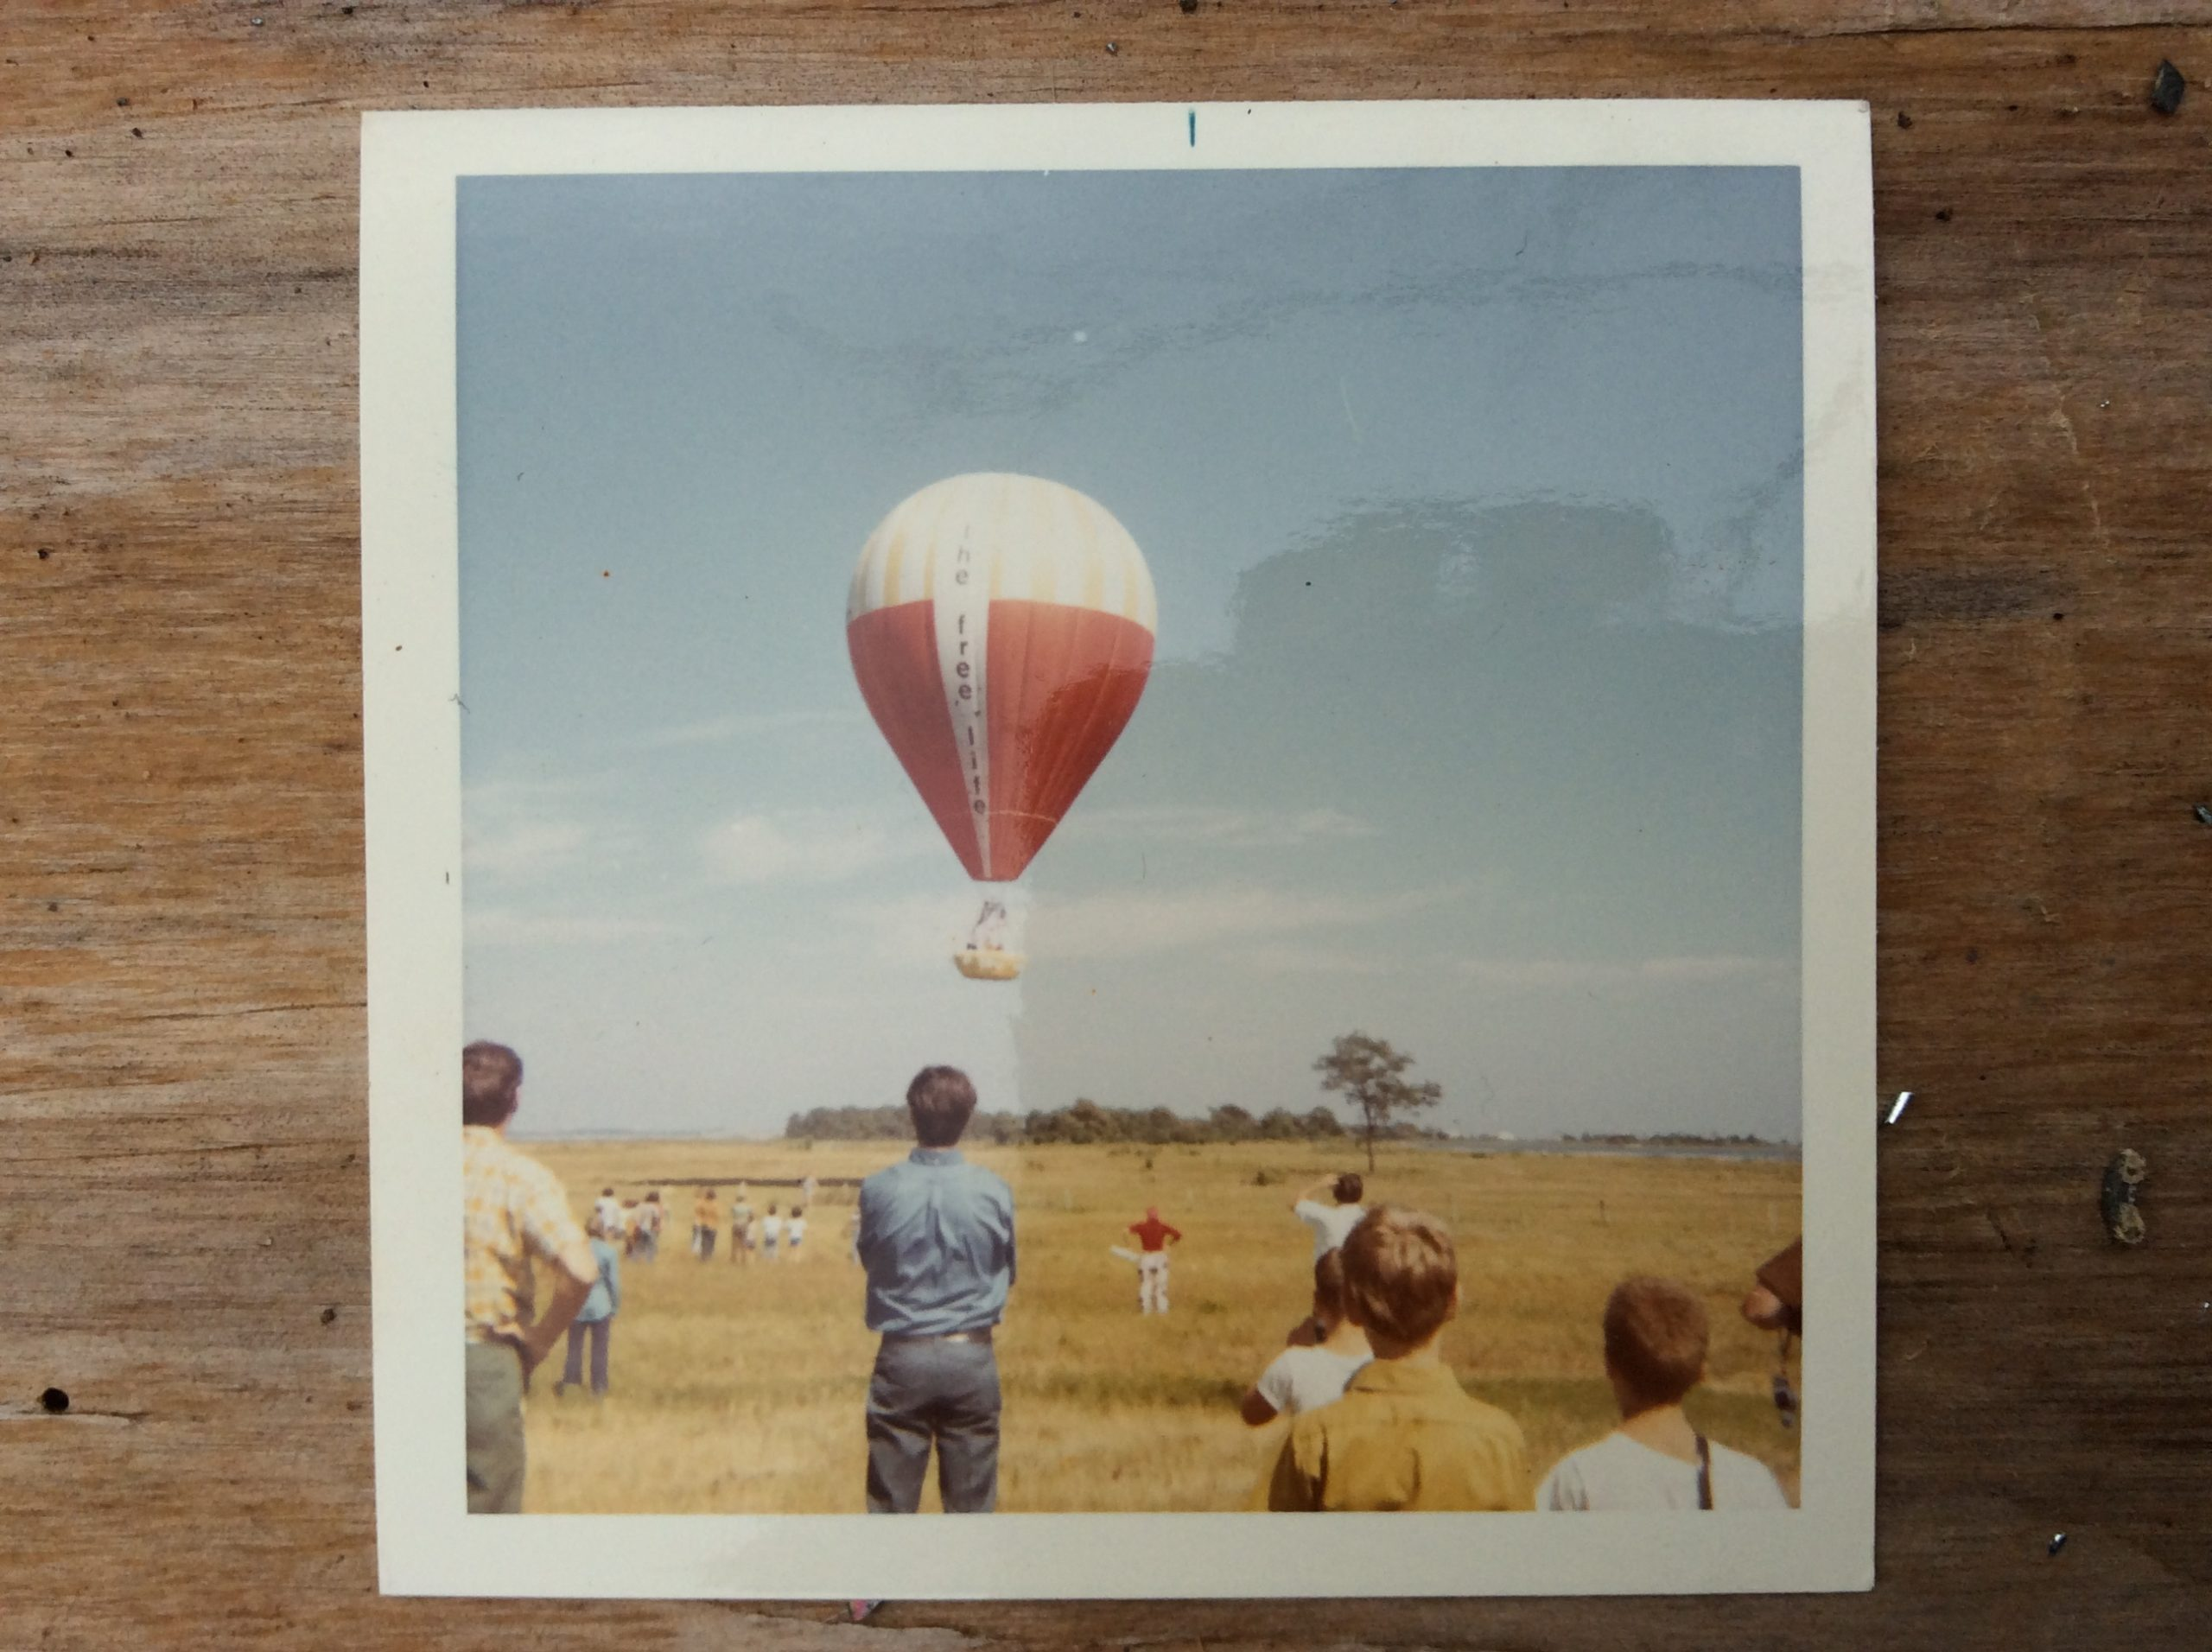 The Free Life takes off from a field in Springs, September 20, 1970.